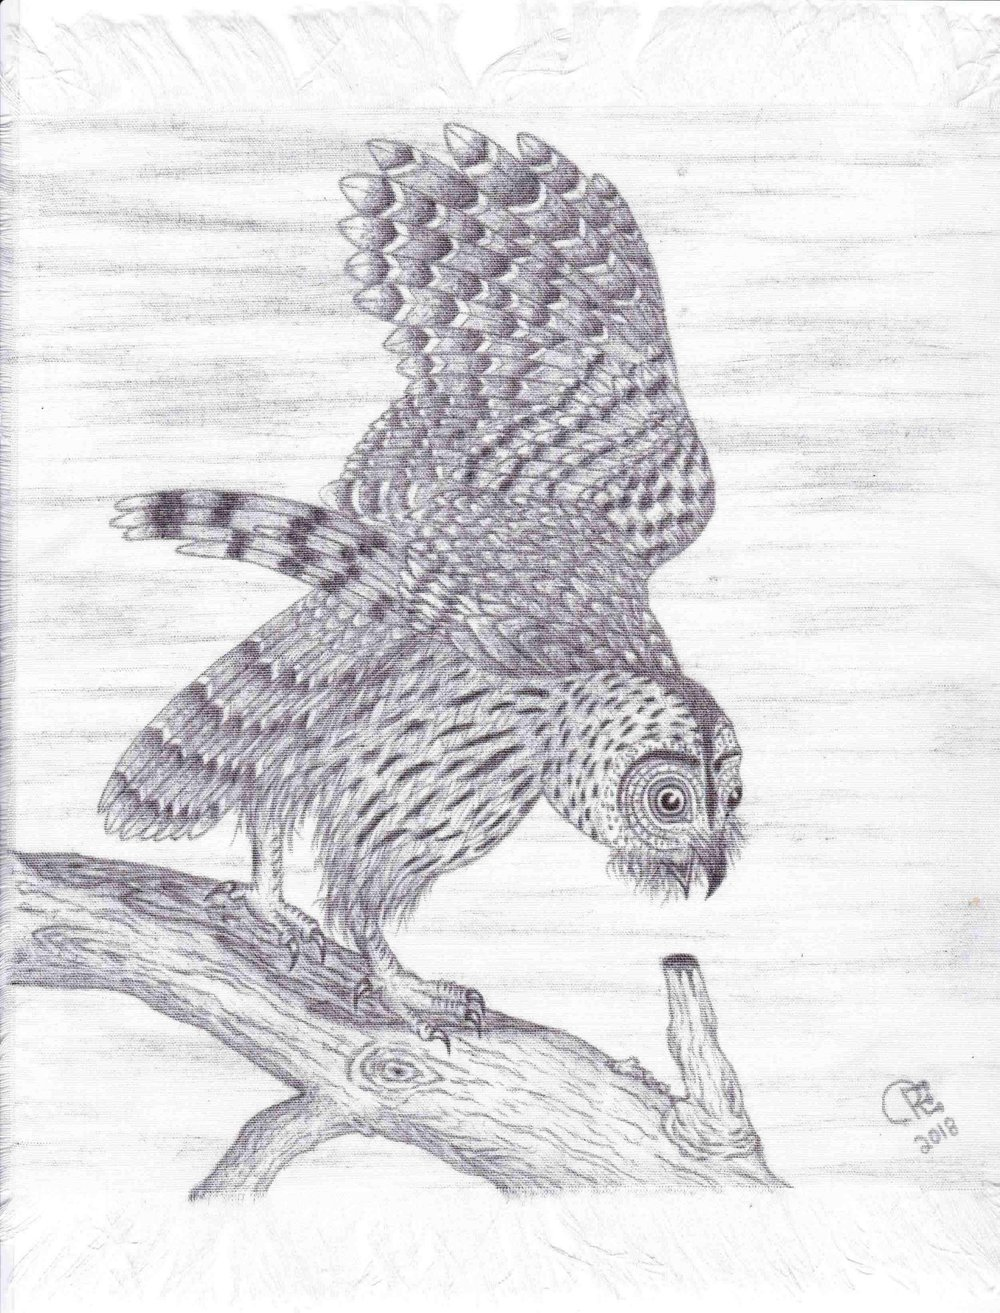 Owl by Roger Florida-Owl by Roger Florida-IMG_20181125_0001.jpg